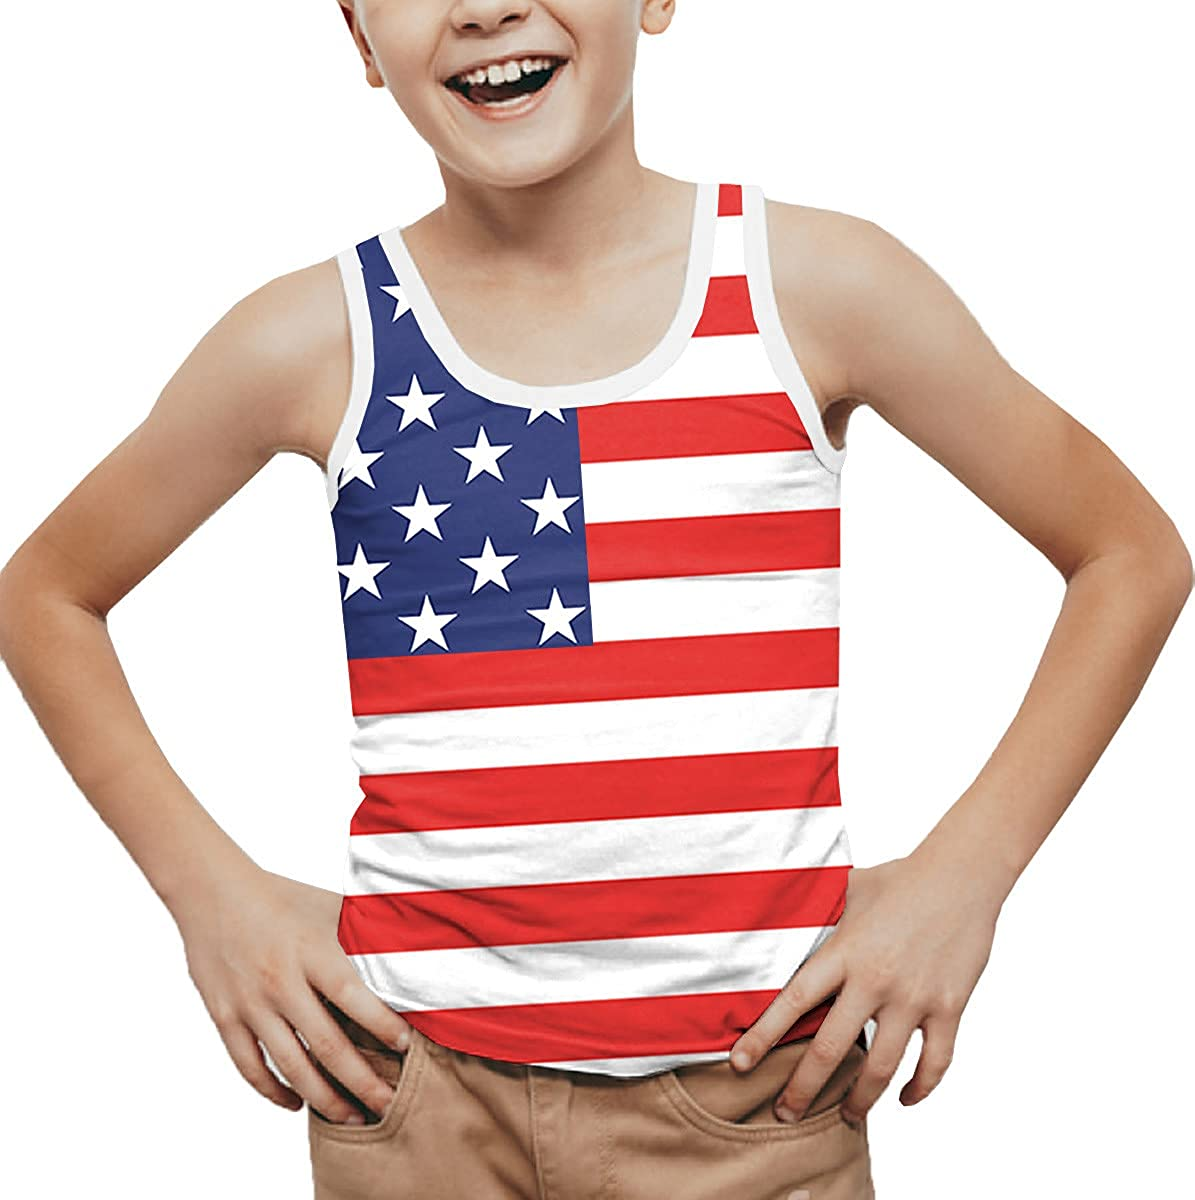 BesserBay Unisex Kid's 4th of July Tank Top American Flag Patriotic Cotton Outfits 1-12 Years